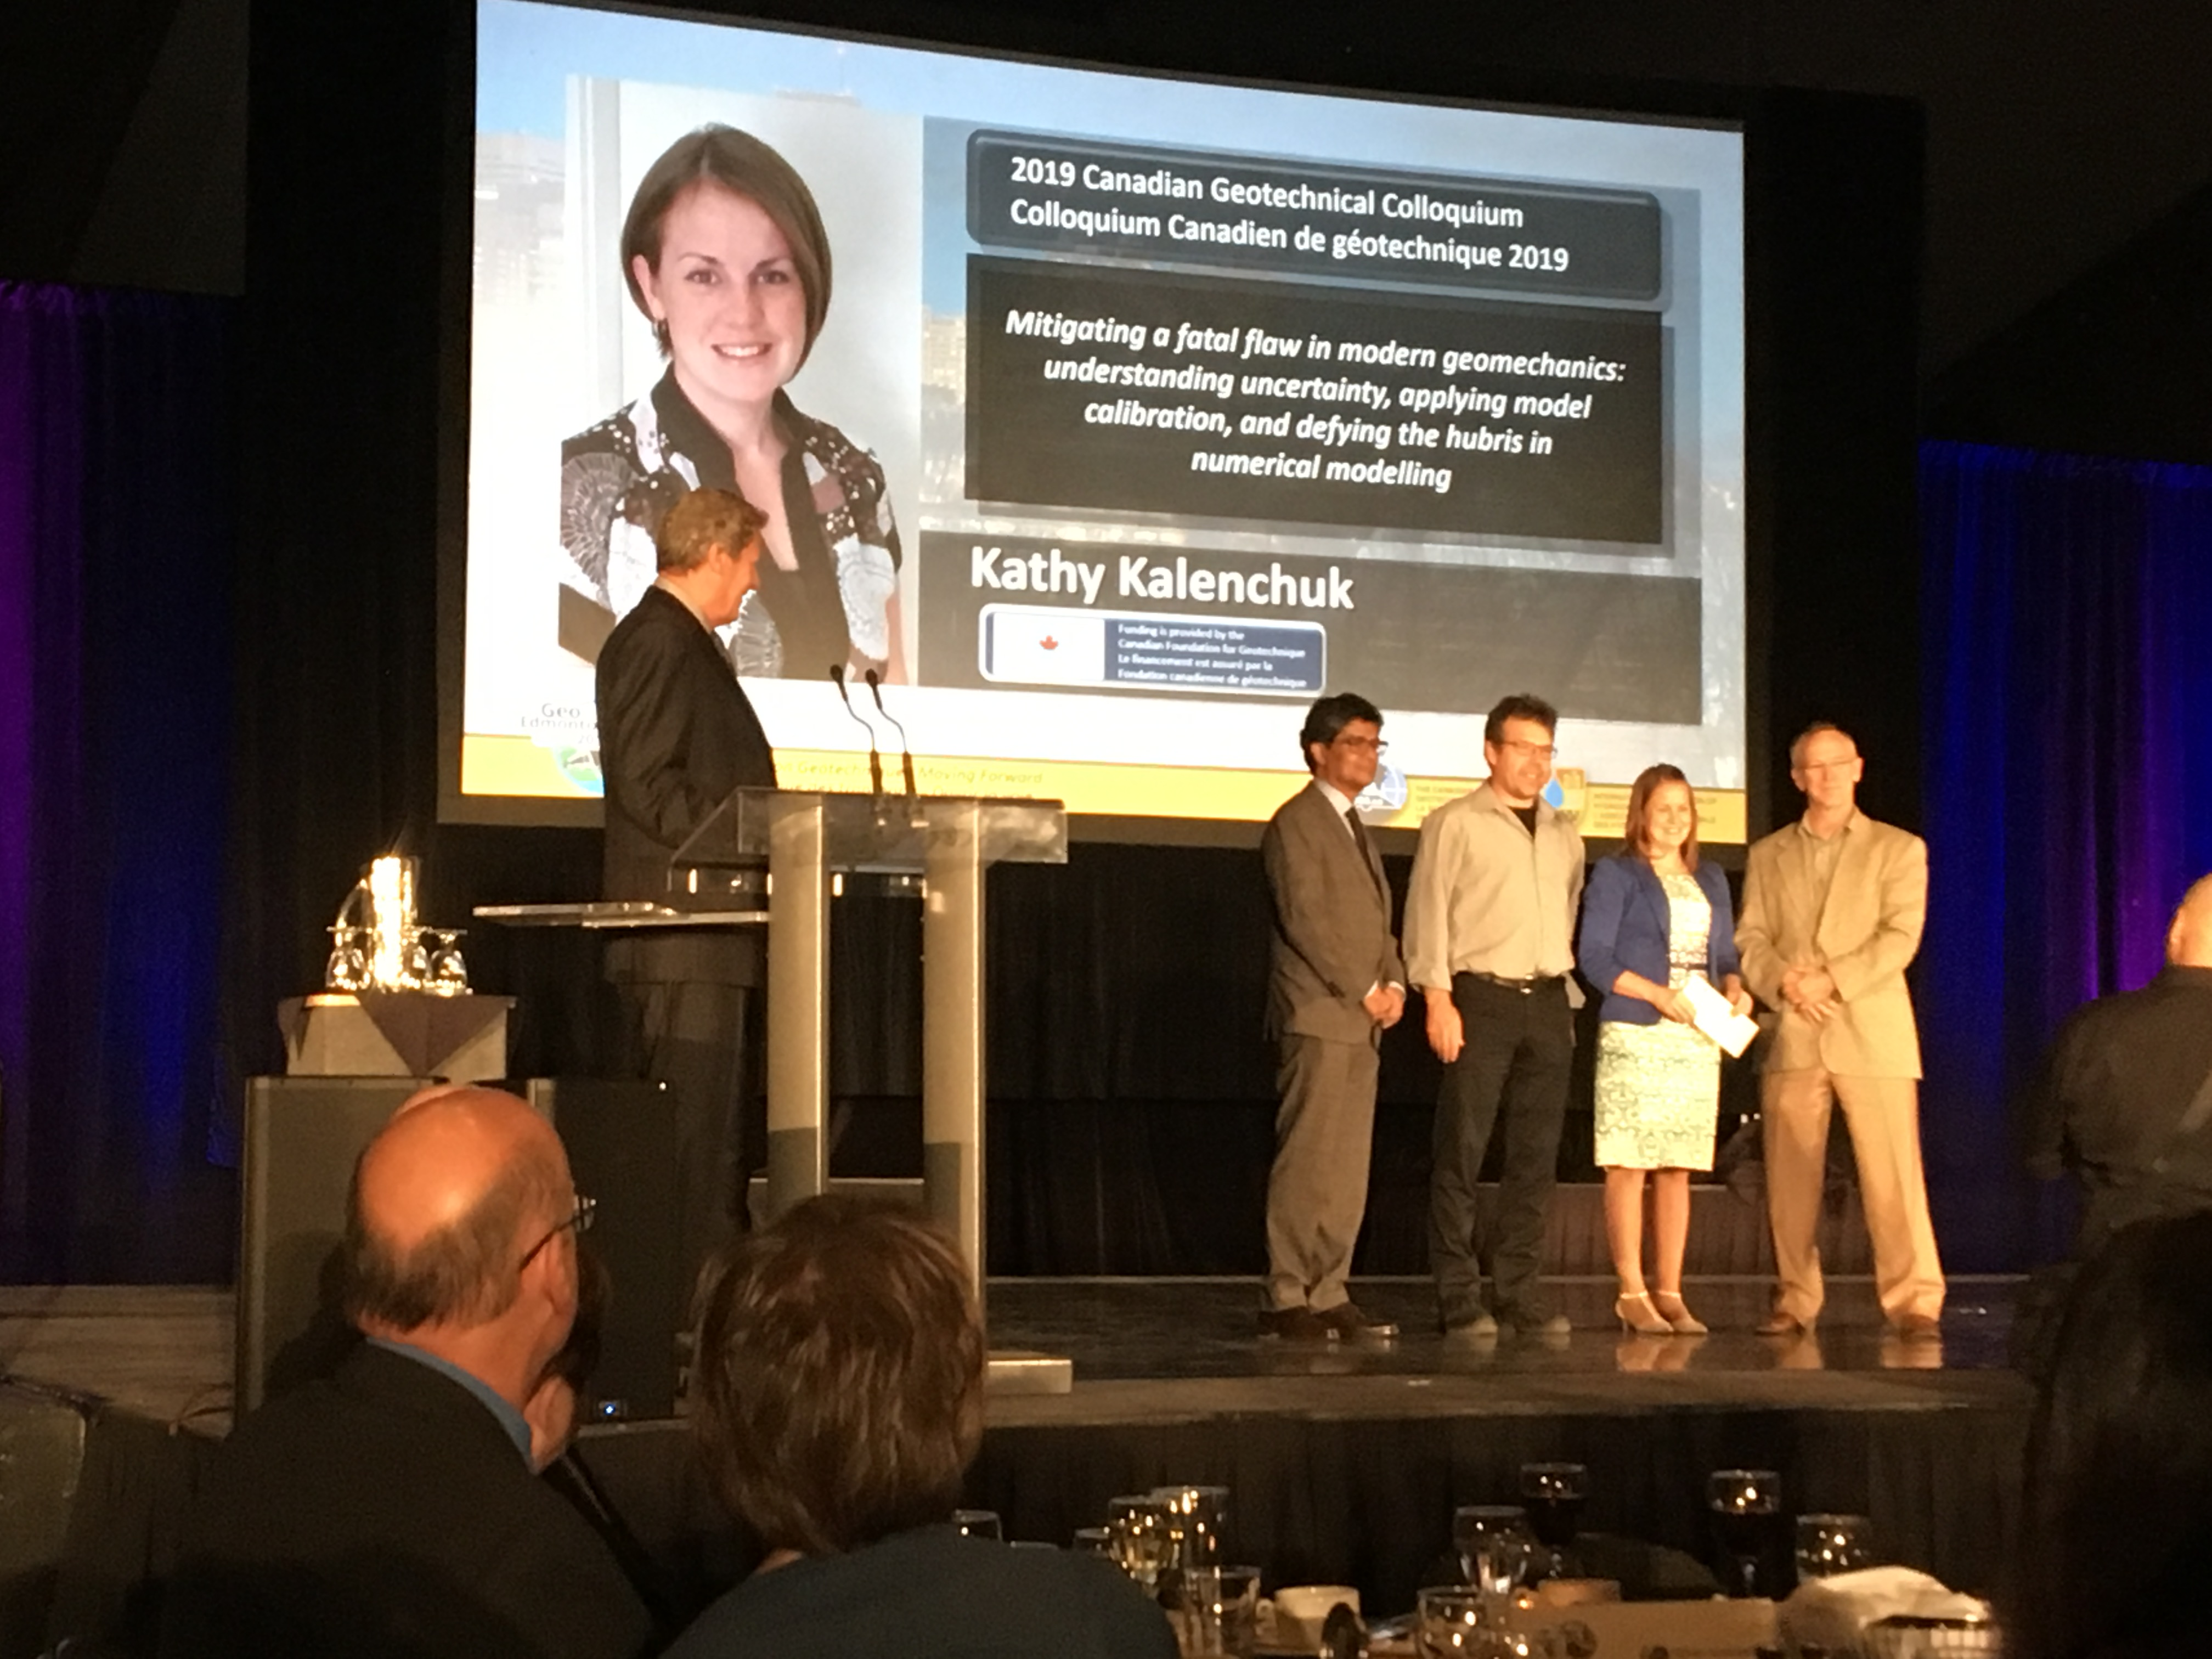 Dr. Kathy Kalenchuk Awarded 2019 Canadian Geotechnical Colloquium